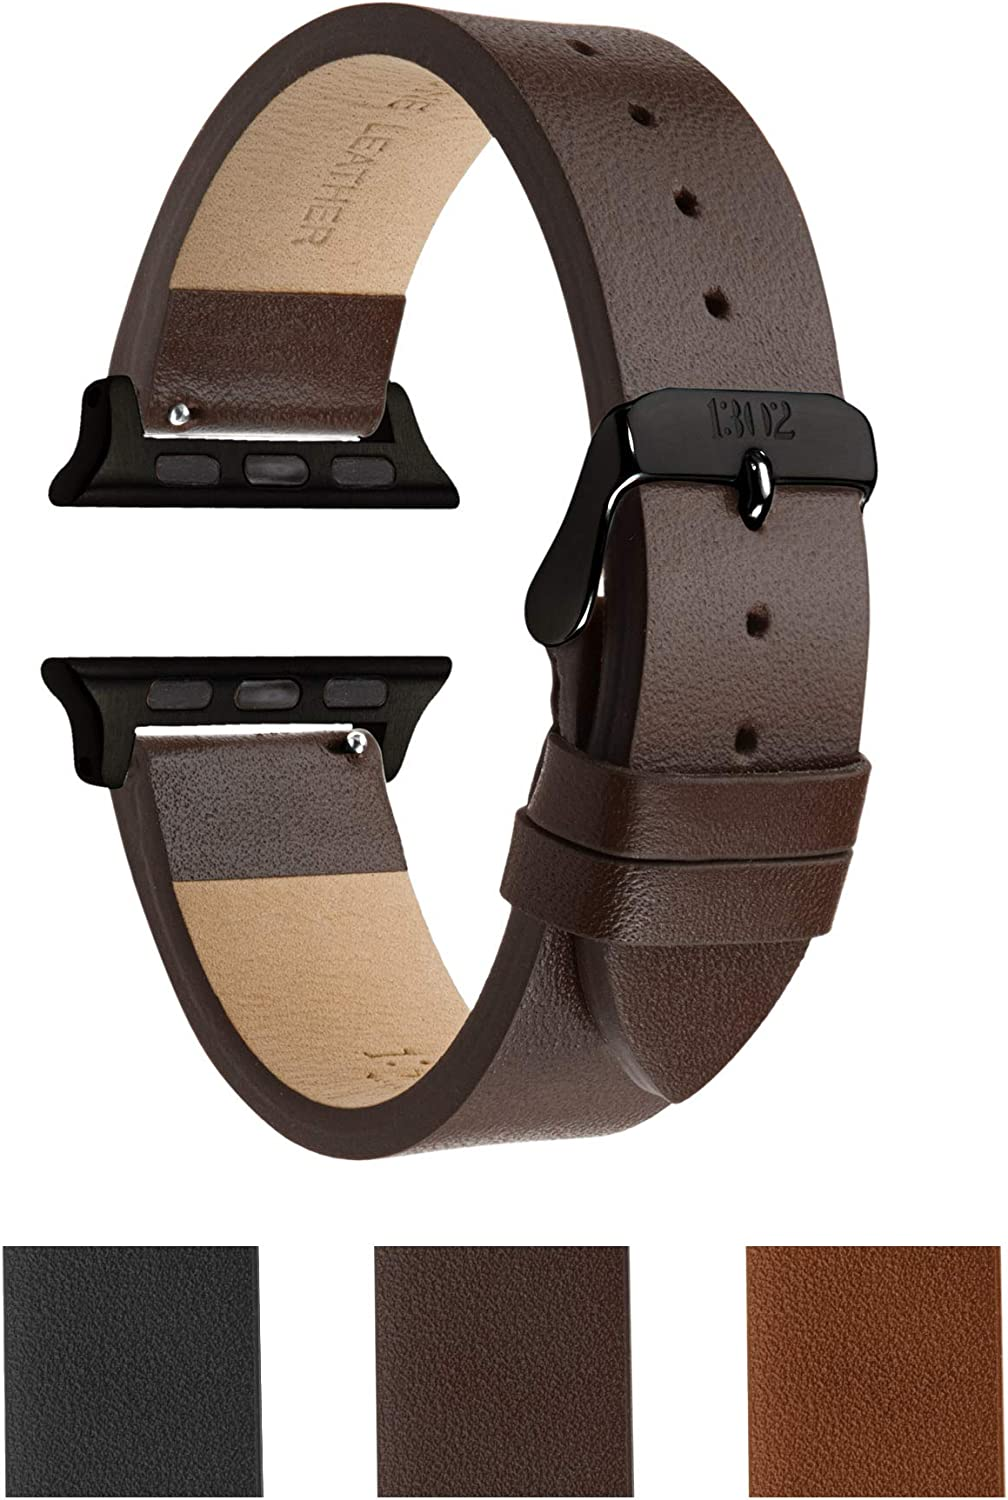 Compatible with Space Grey Apple Watch Band - Apple Watch Band 42mm Brown Leather - Apple Watch Band Tan - Leather Wrap Apple Watch Band - Apple Watch Band 42mm, Fits Apple Watch SE, 6, 5, 4, 3, 2 1